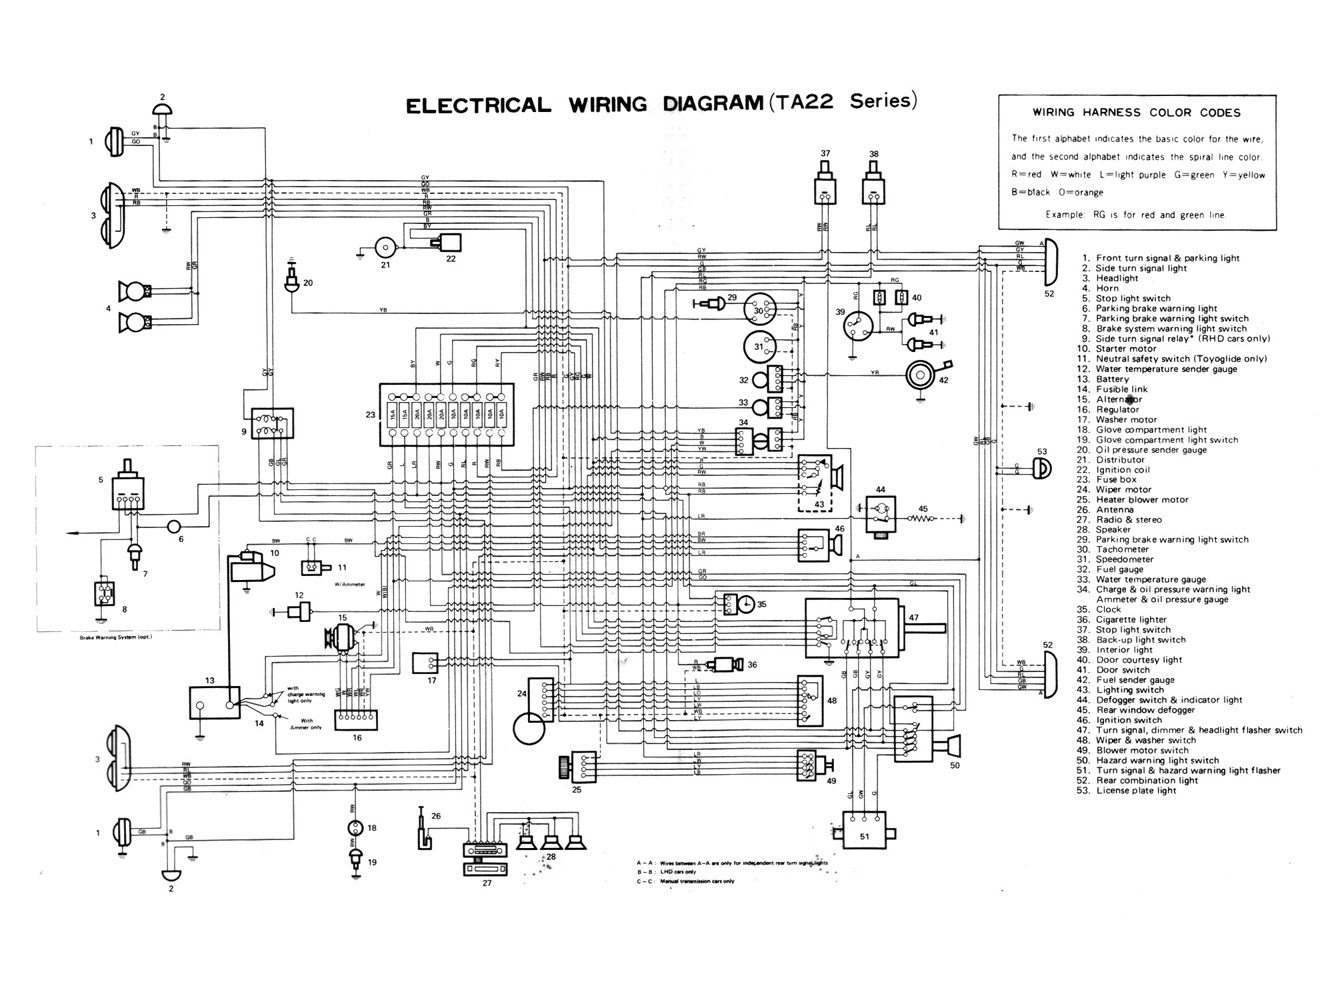 09 24 Electrical Wiring Diagram (TA22 Series) 2001 toyota celica wiring diagram 2001 toyota celica radio wiring 2001 toyota celica fuse box layout at alyssarenee.co